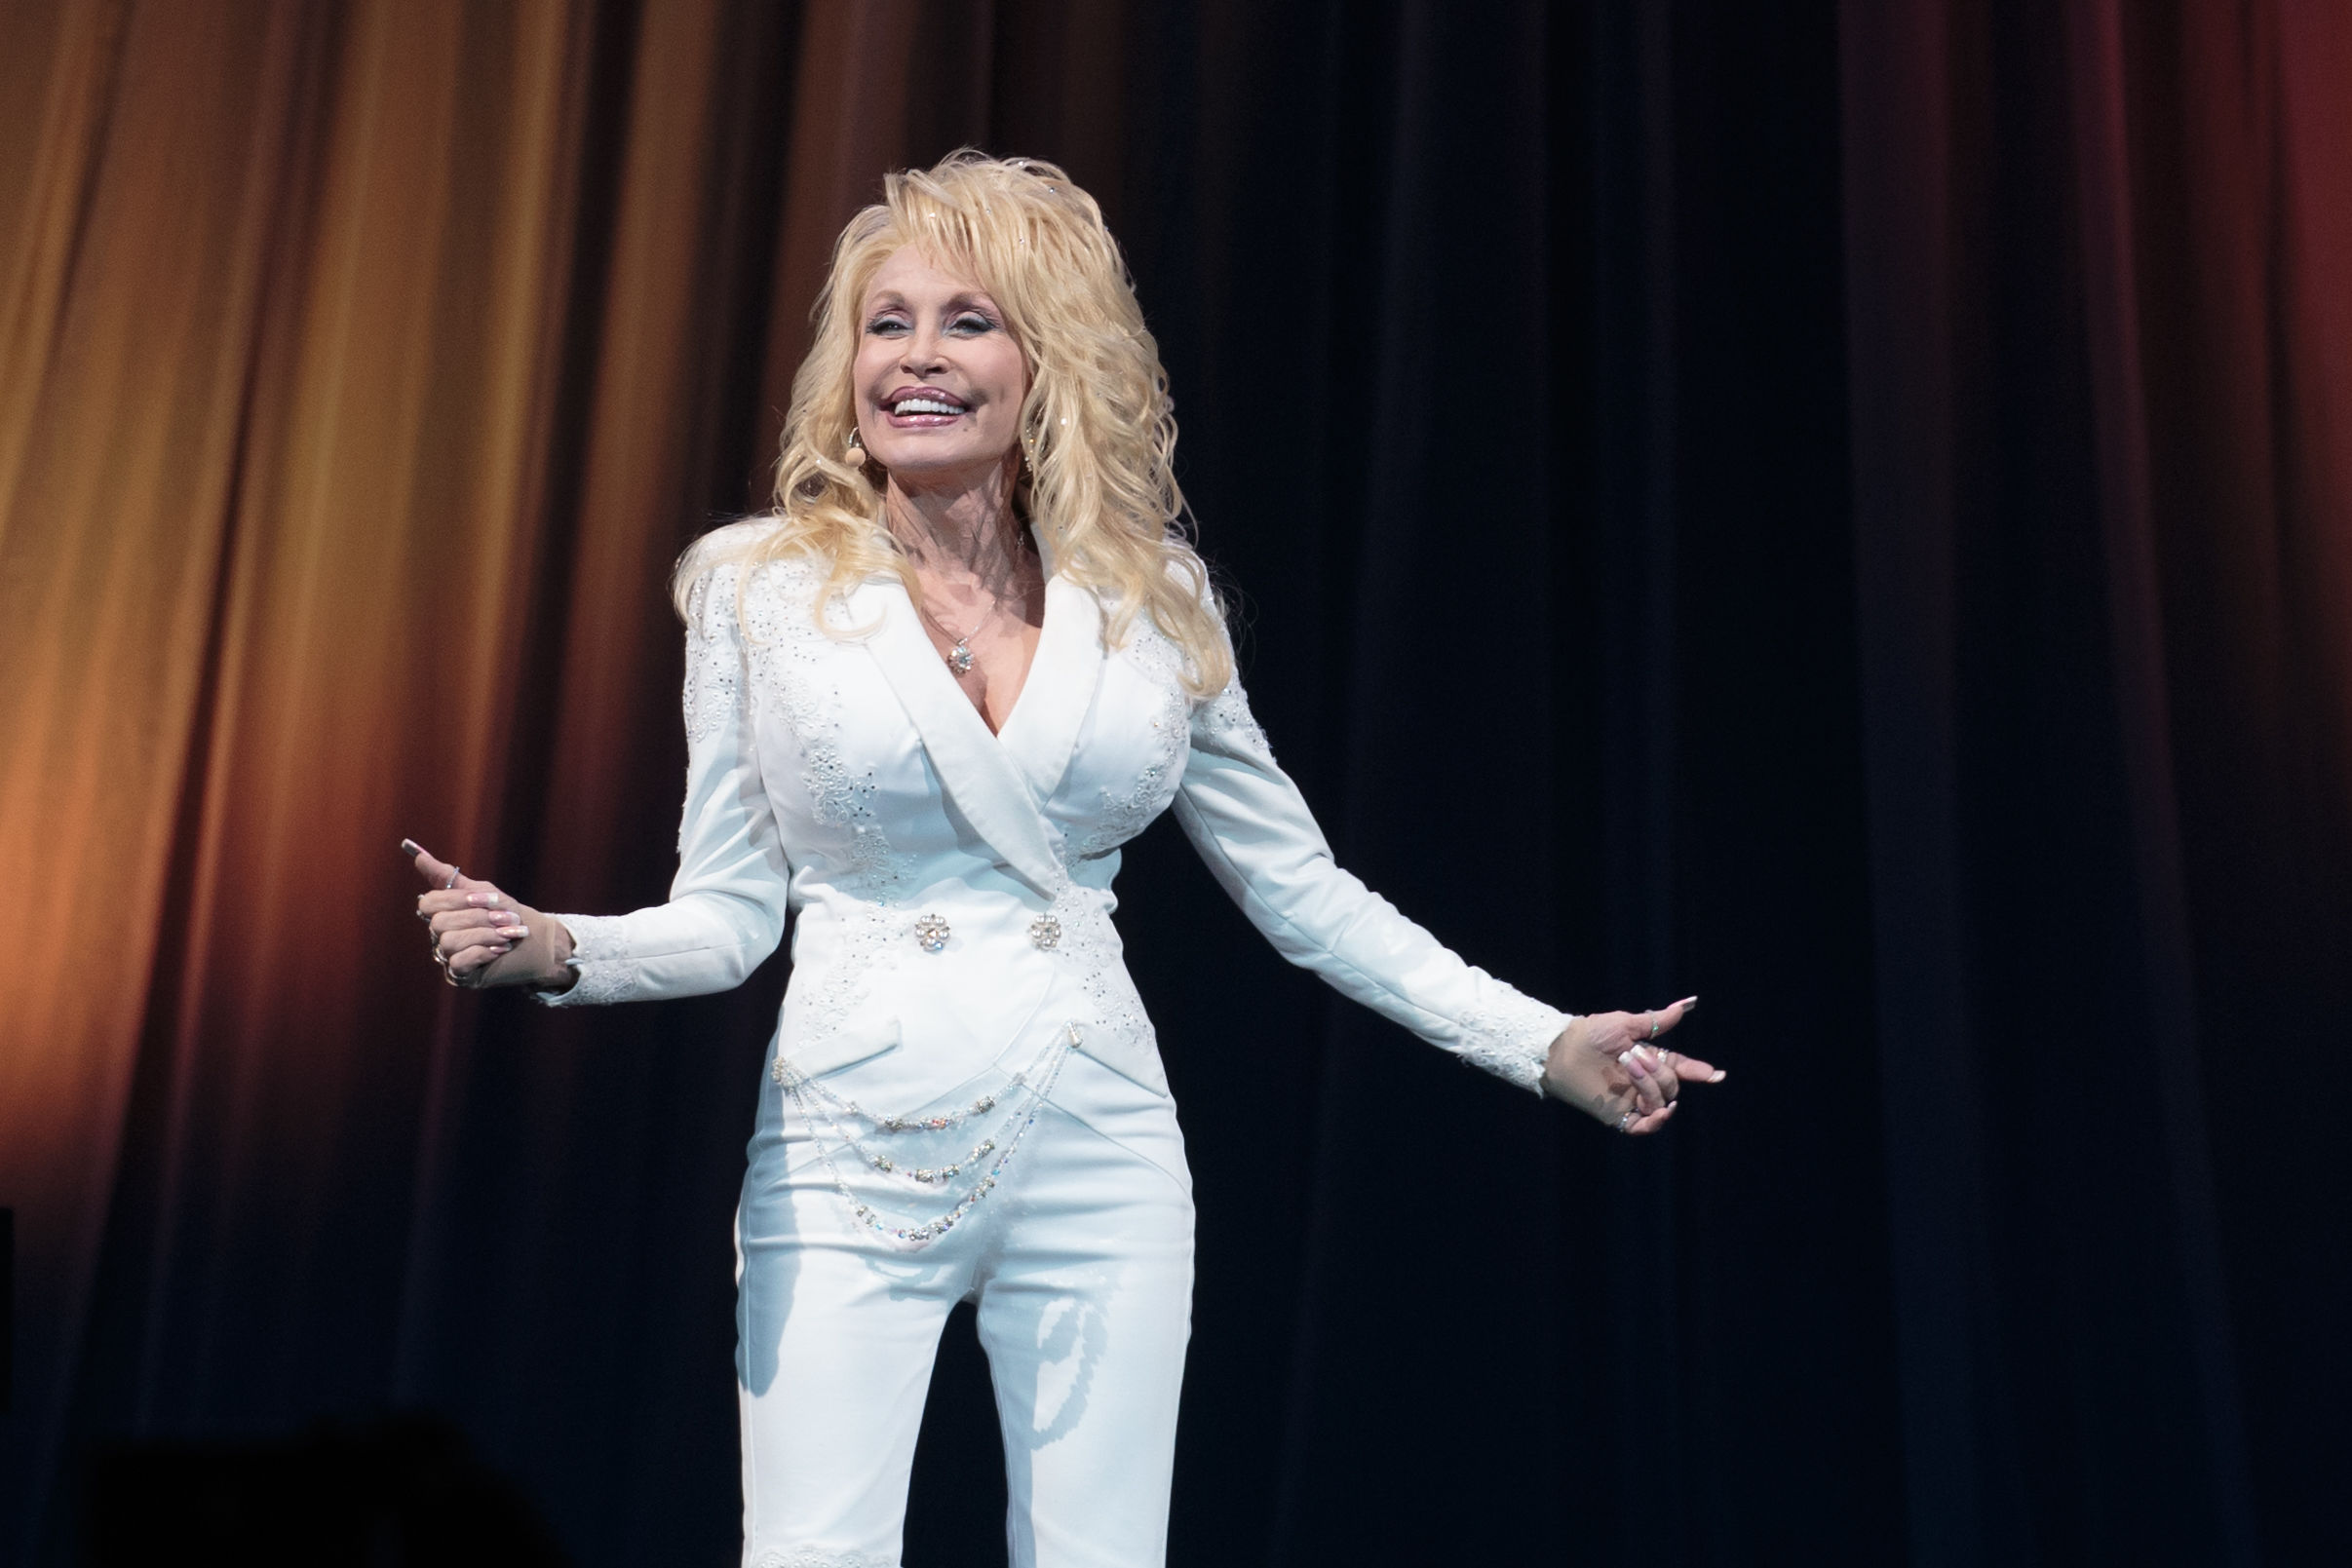 Dolly Parton Shares Her Family's 'Stone Soup' Recipe